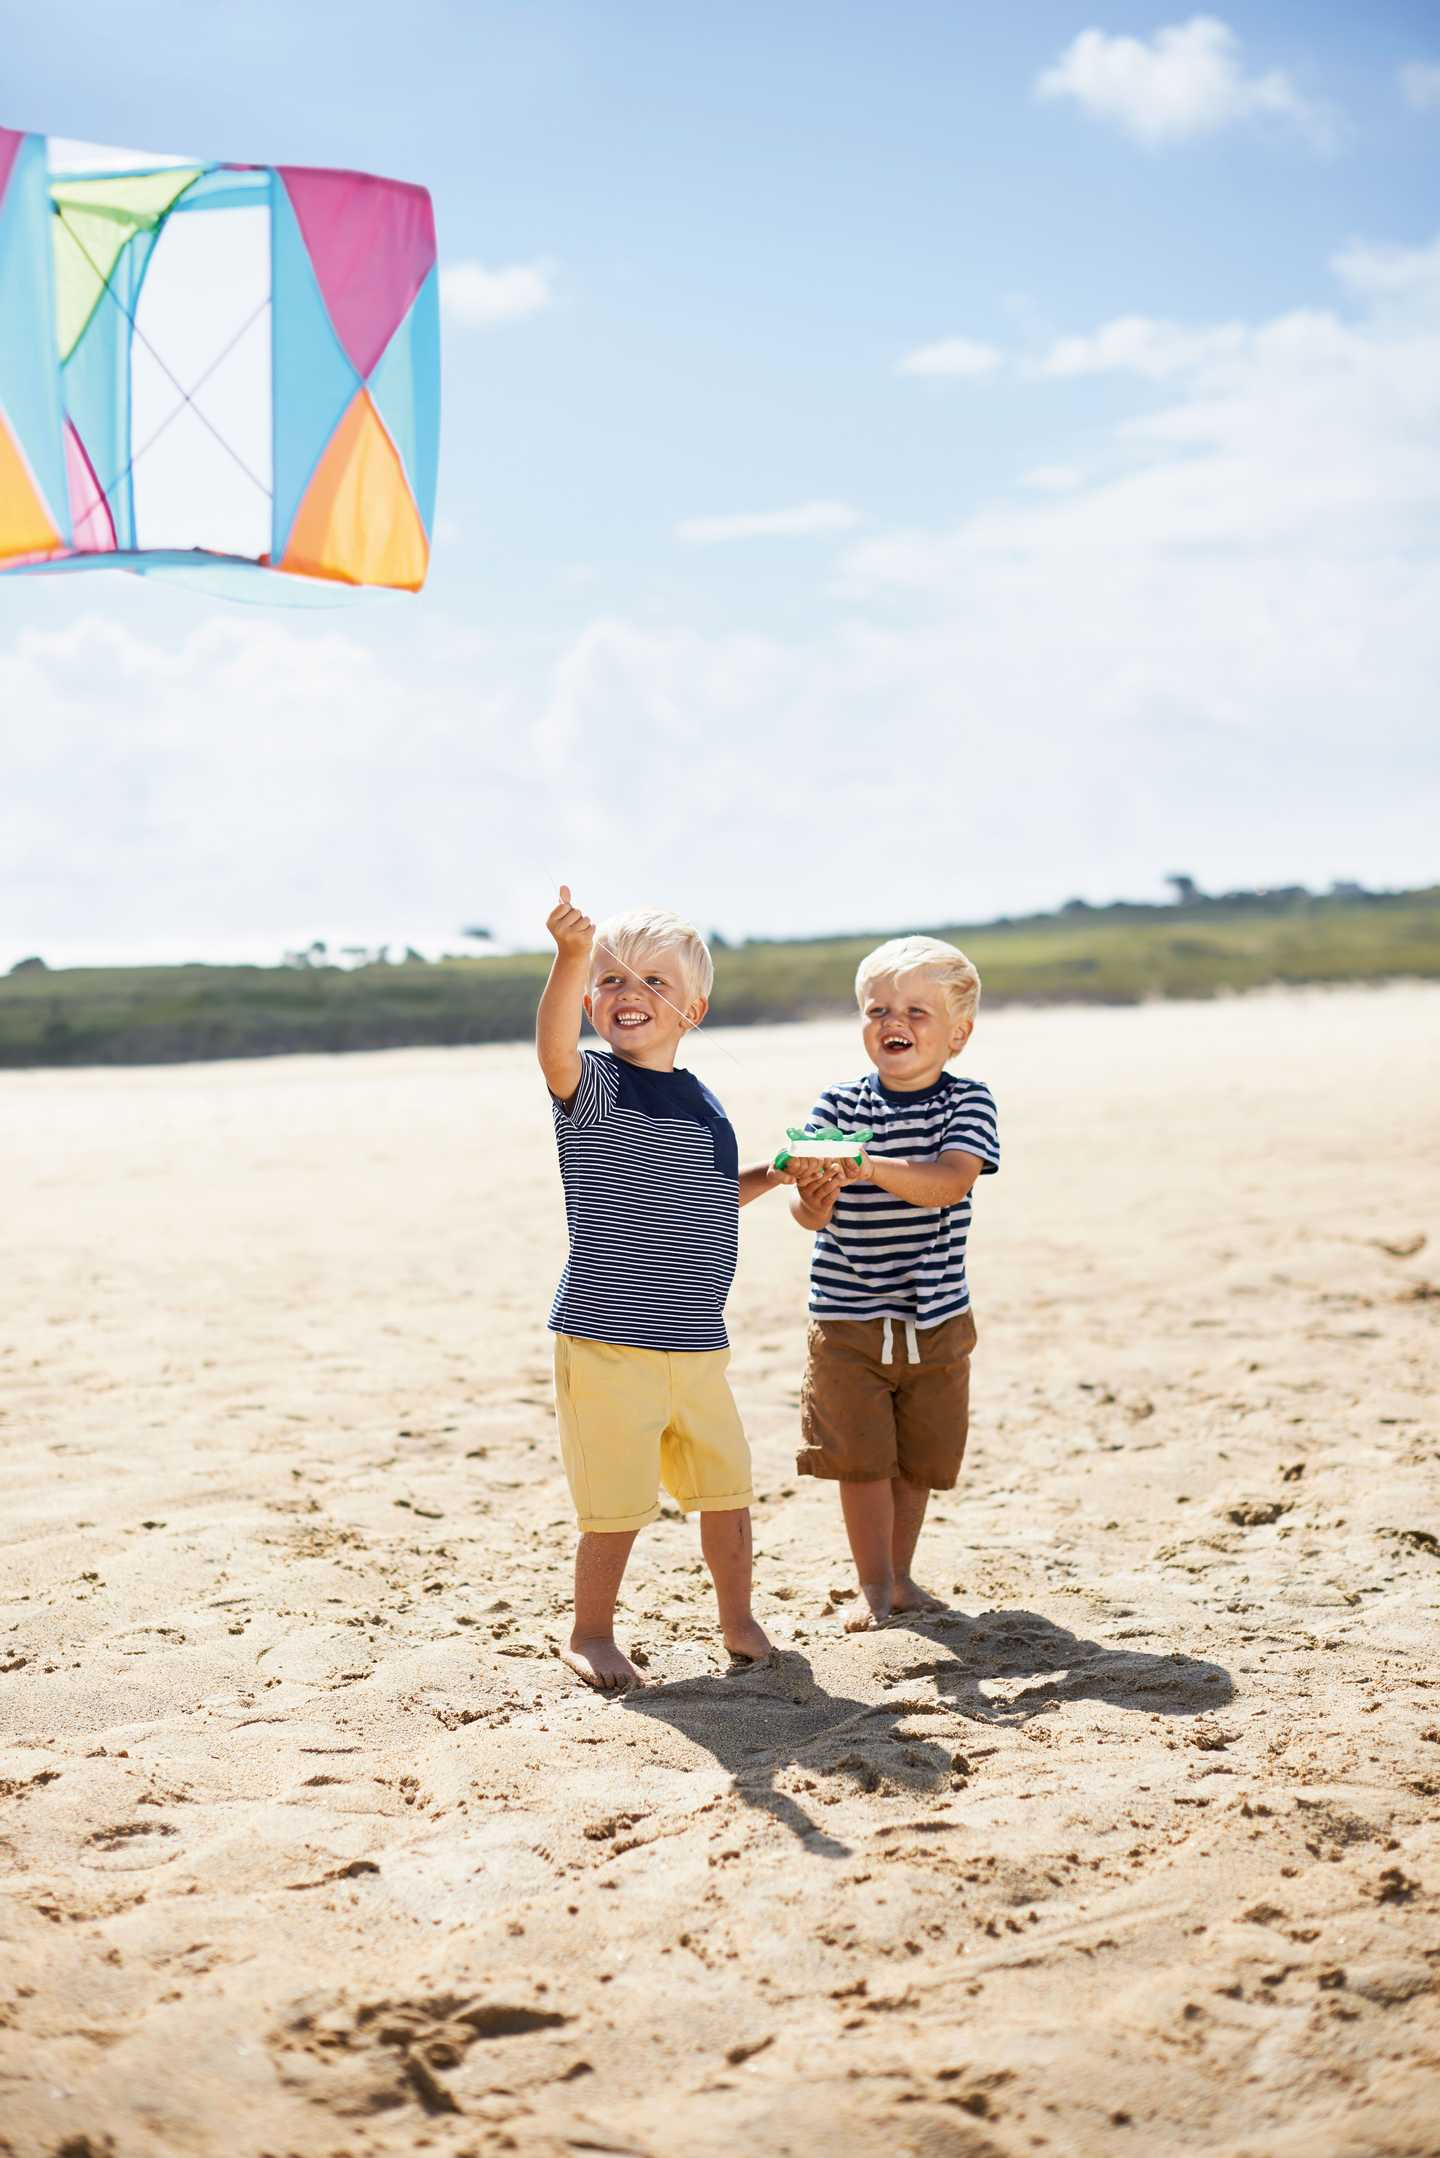 Children playing on the beach flying a kite